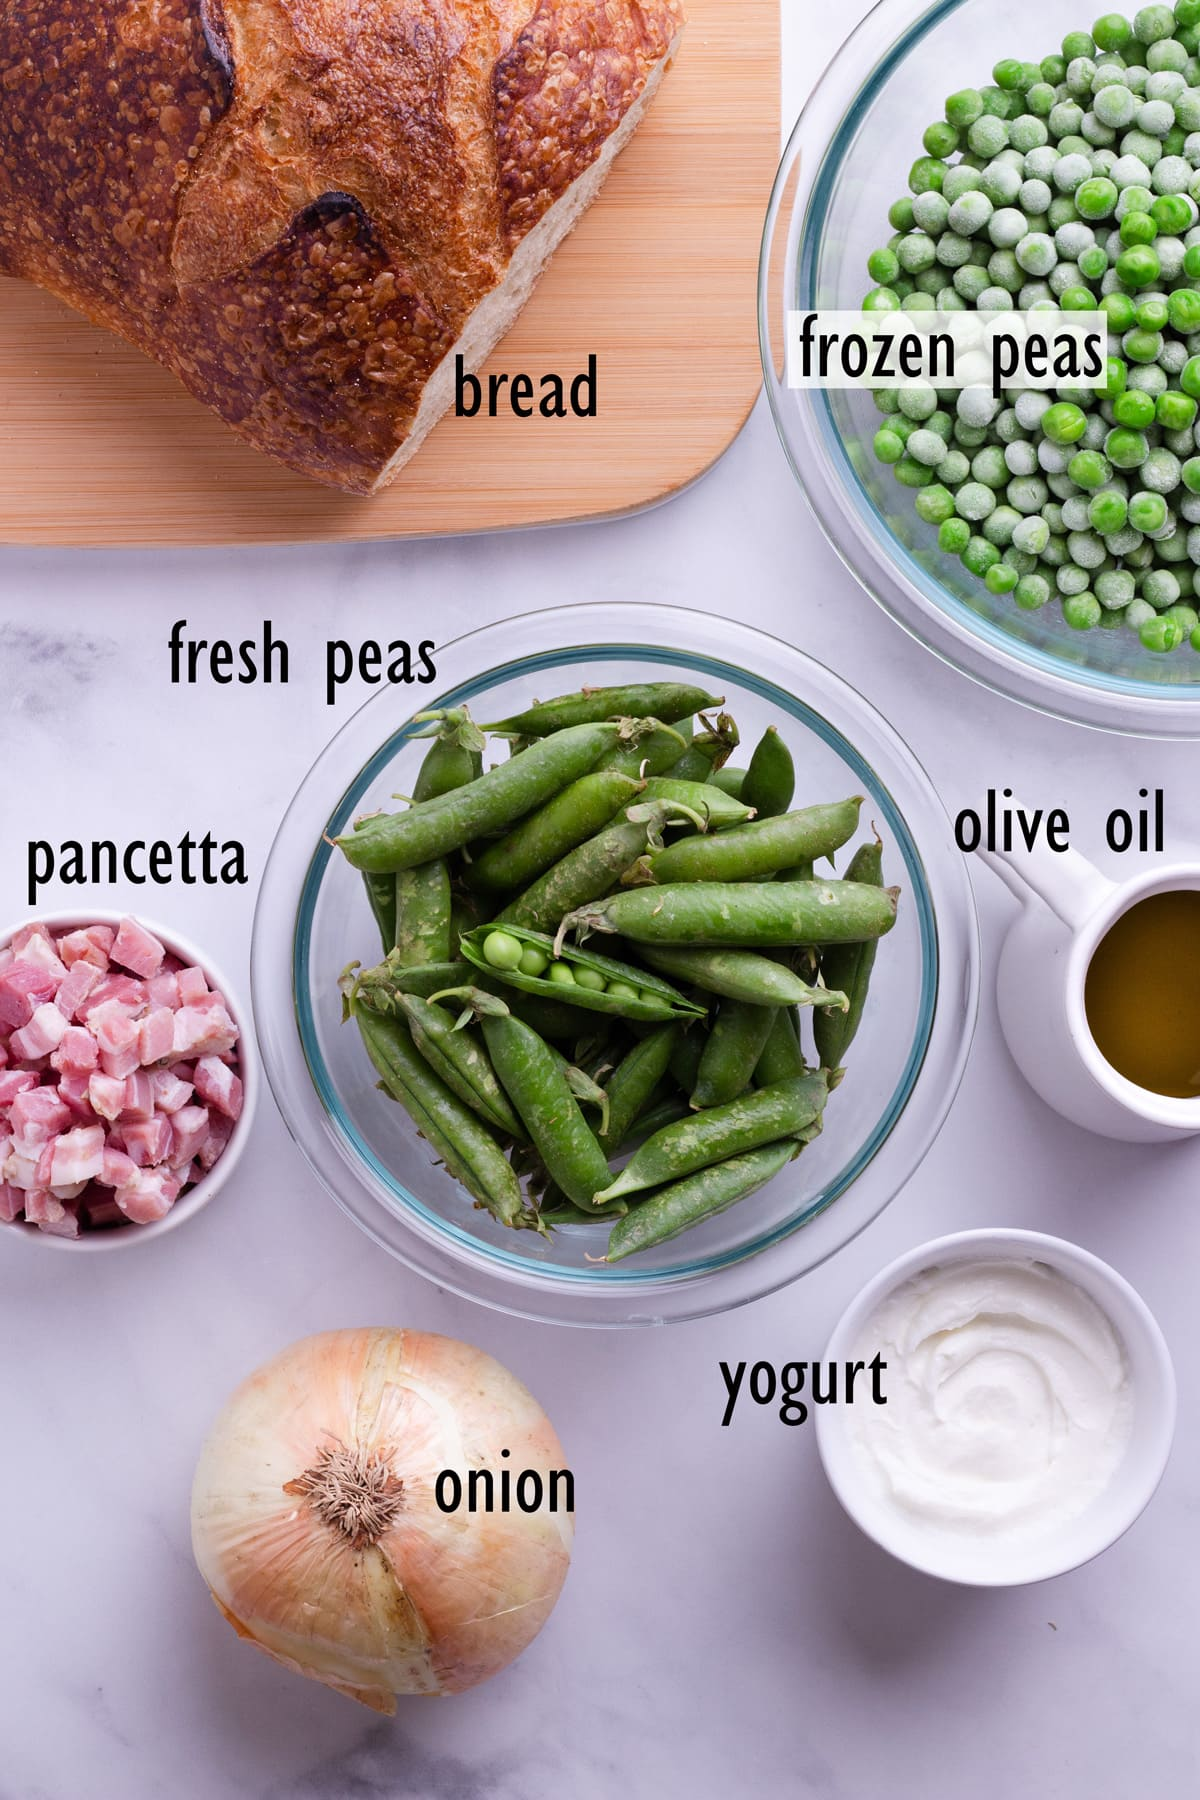 Overhead view of ingredients for soup including fresh and frozen green peas, pancetta, bread, olive oil, onion and yogurt.